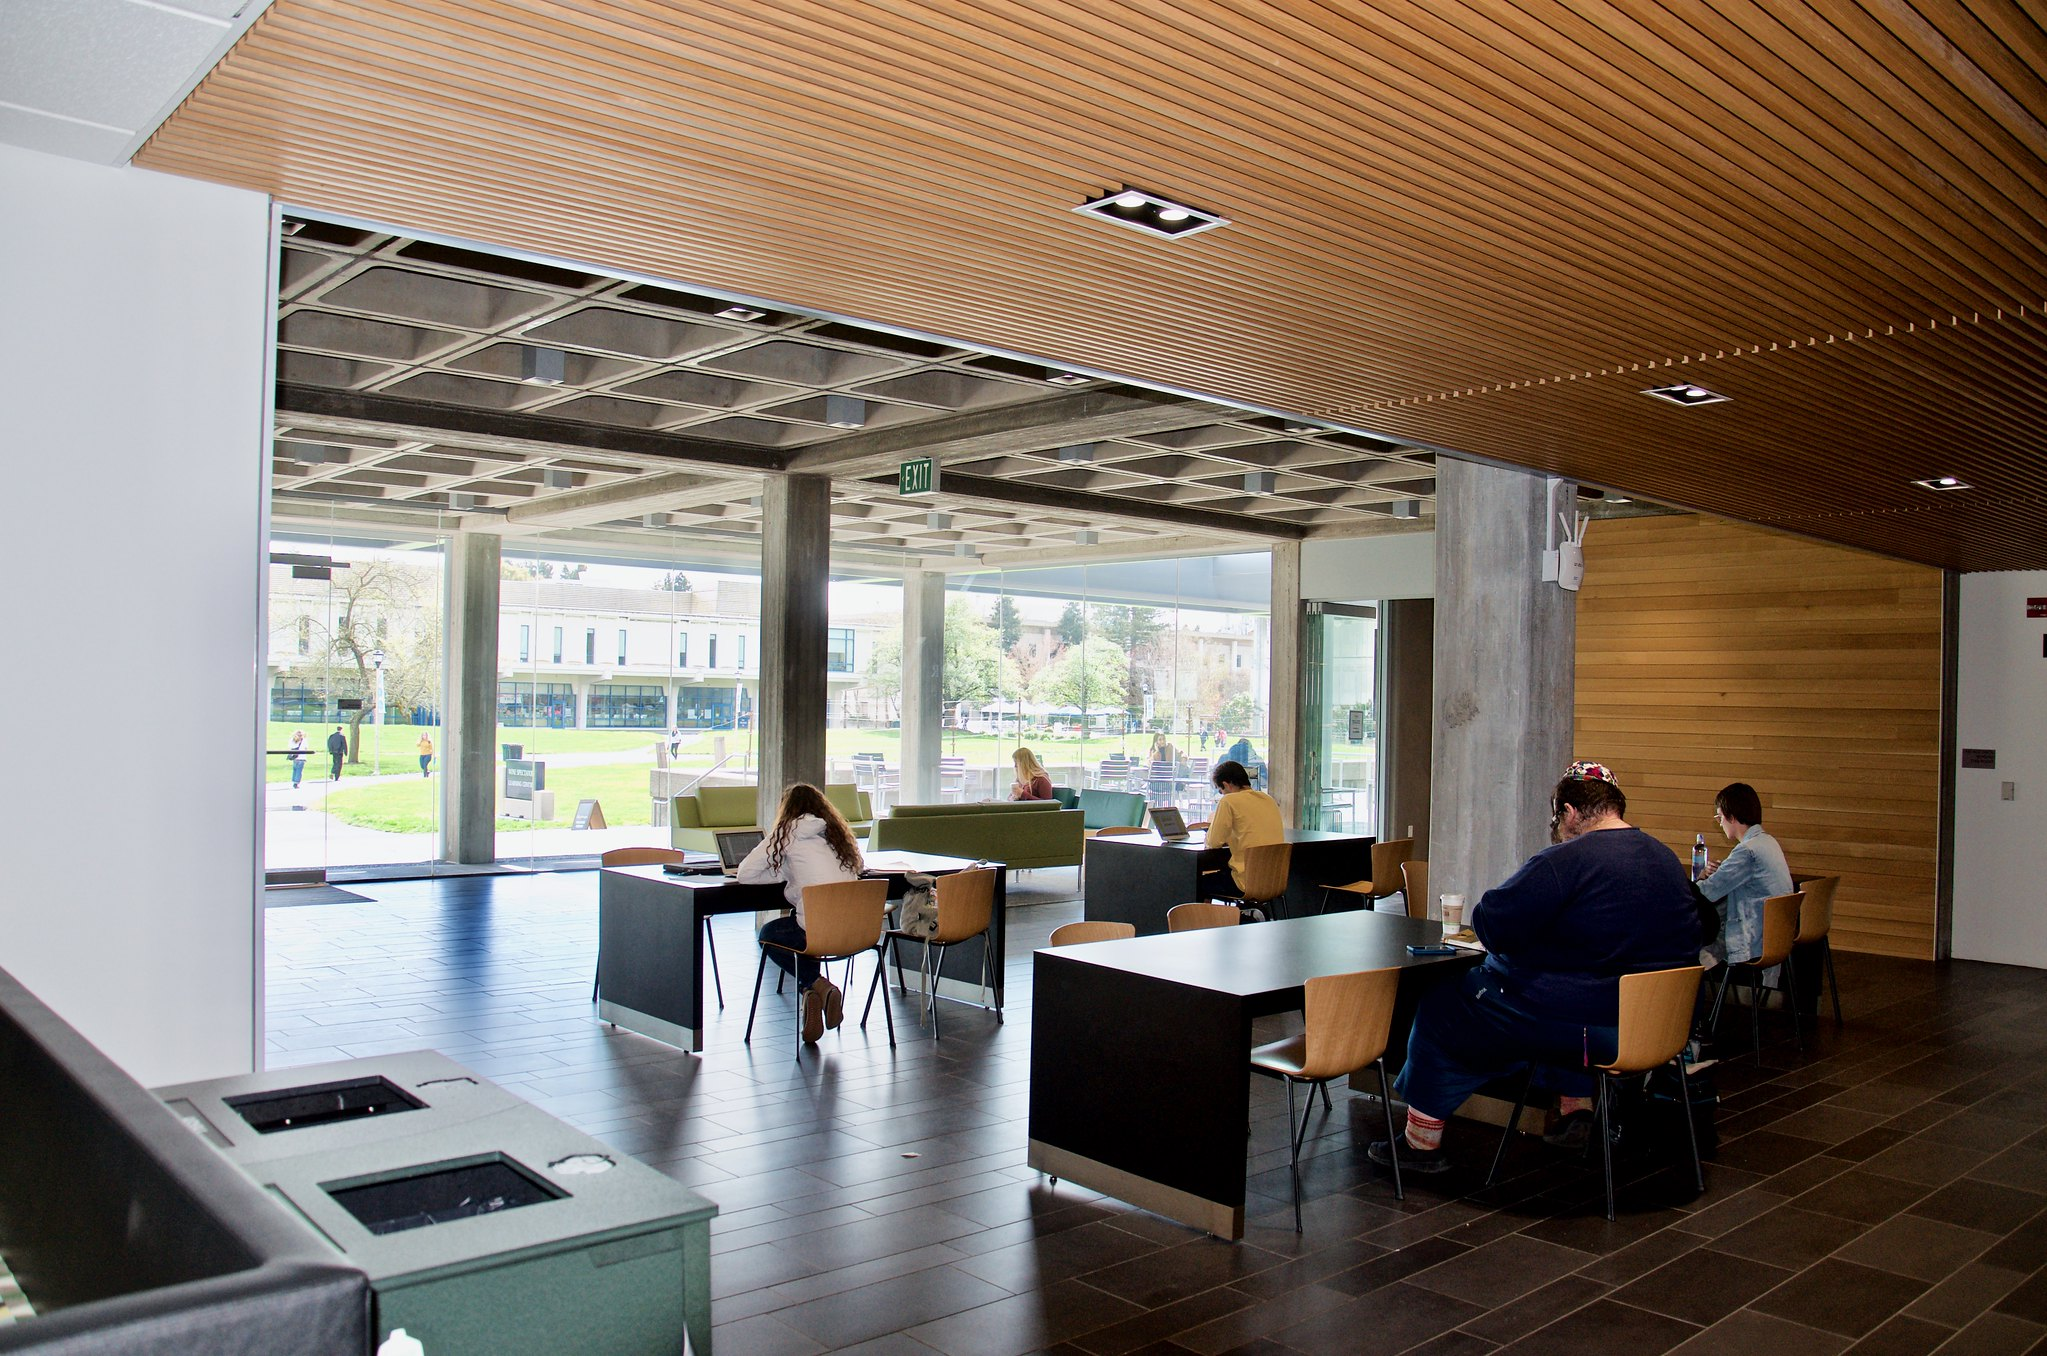 Students gather in the main room of the Learning Center, which also offers food and drinks, to study and socialize.